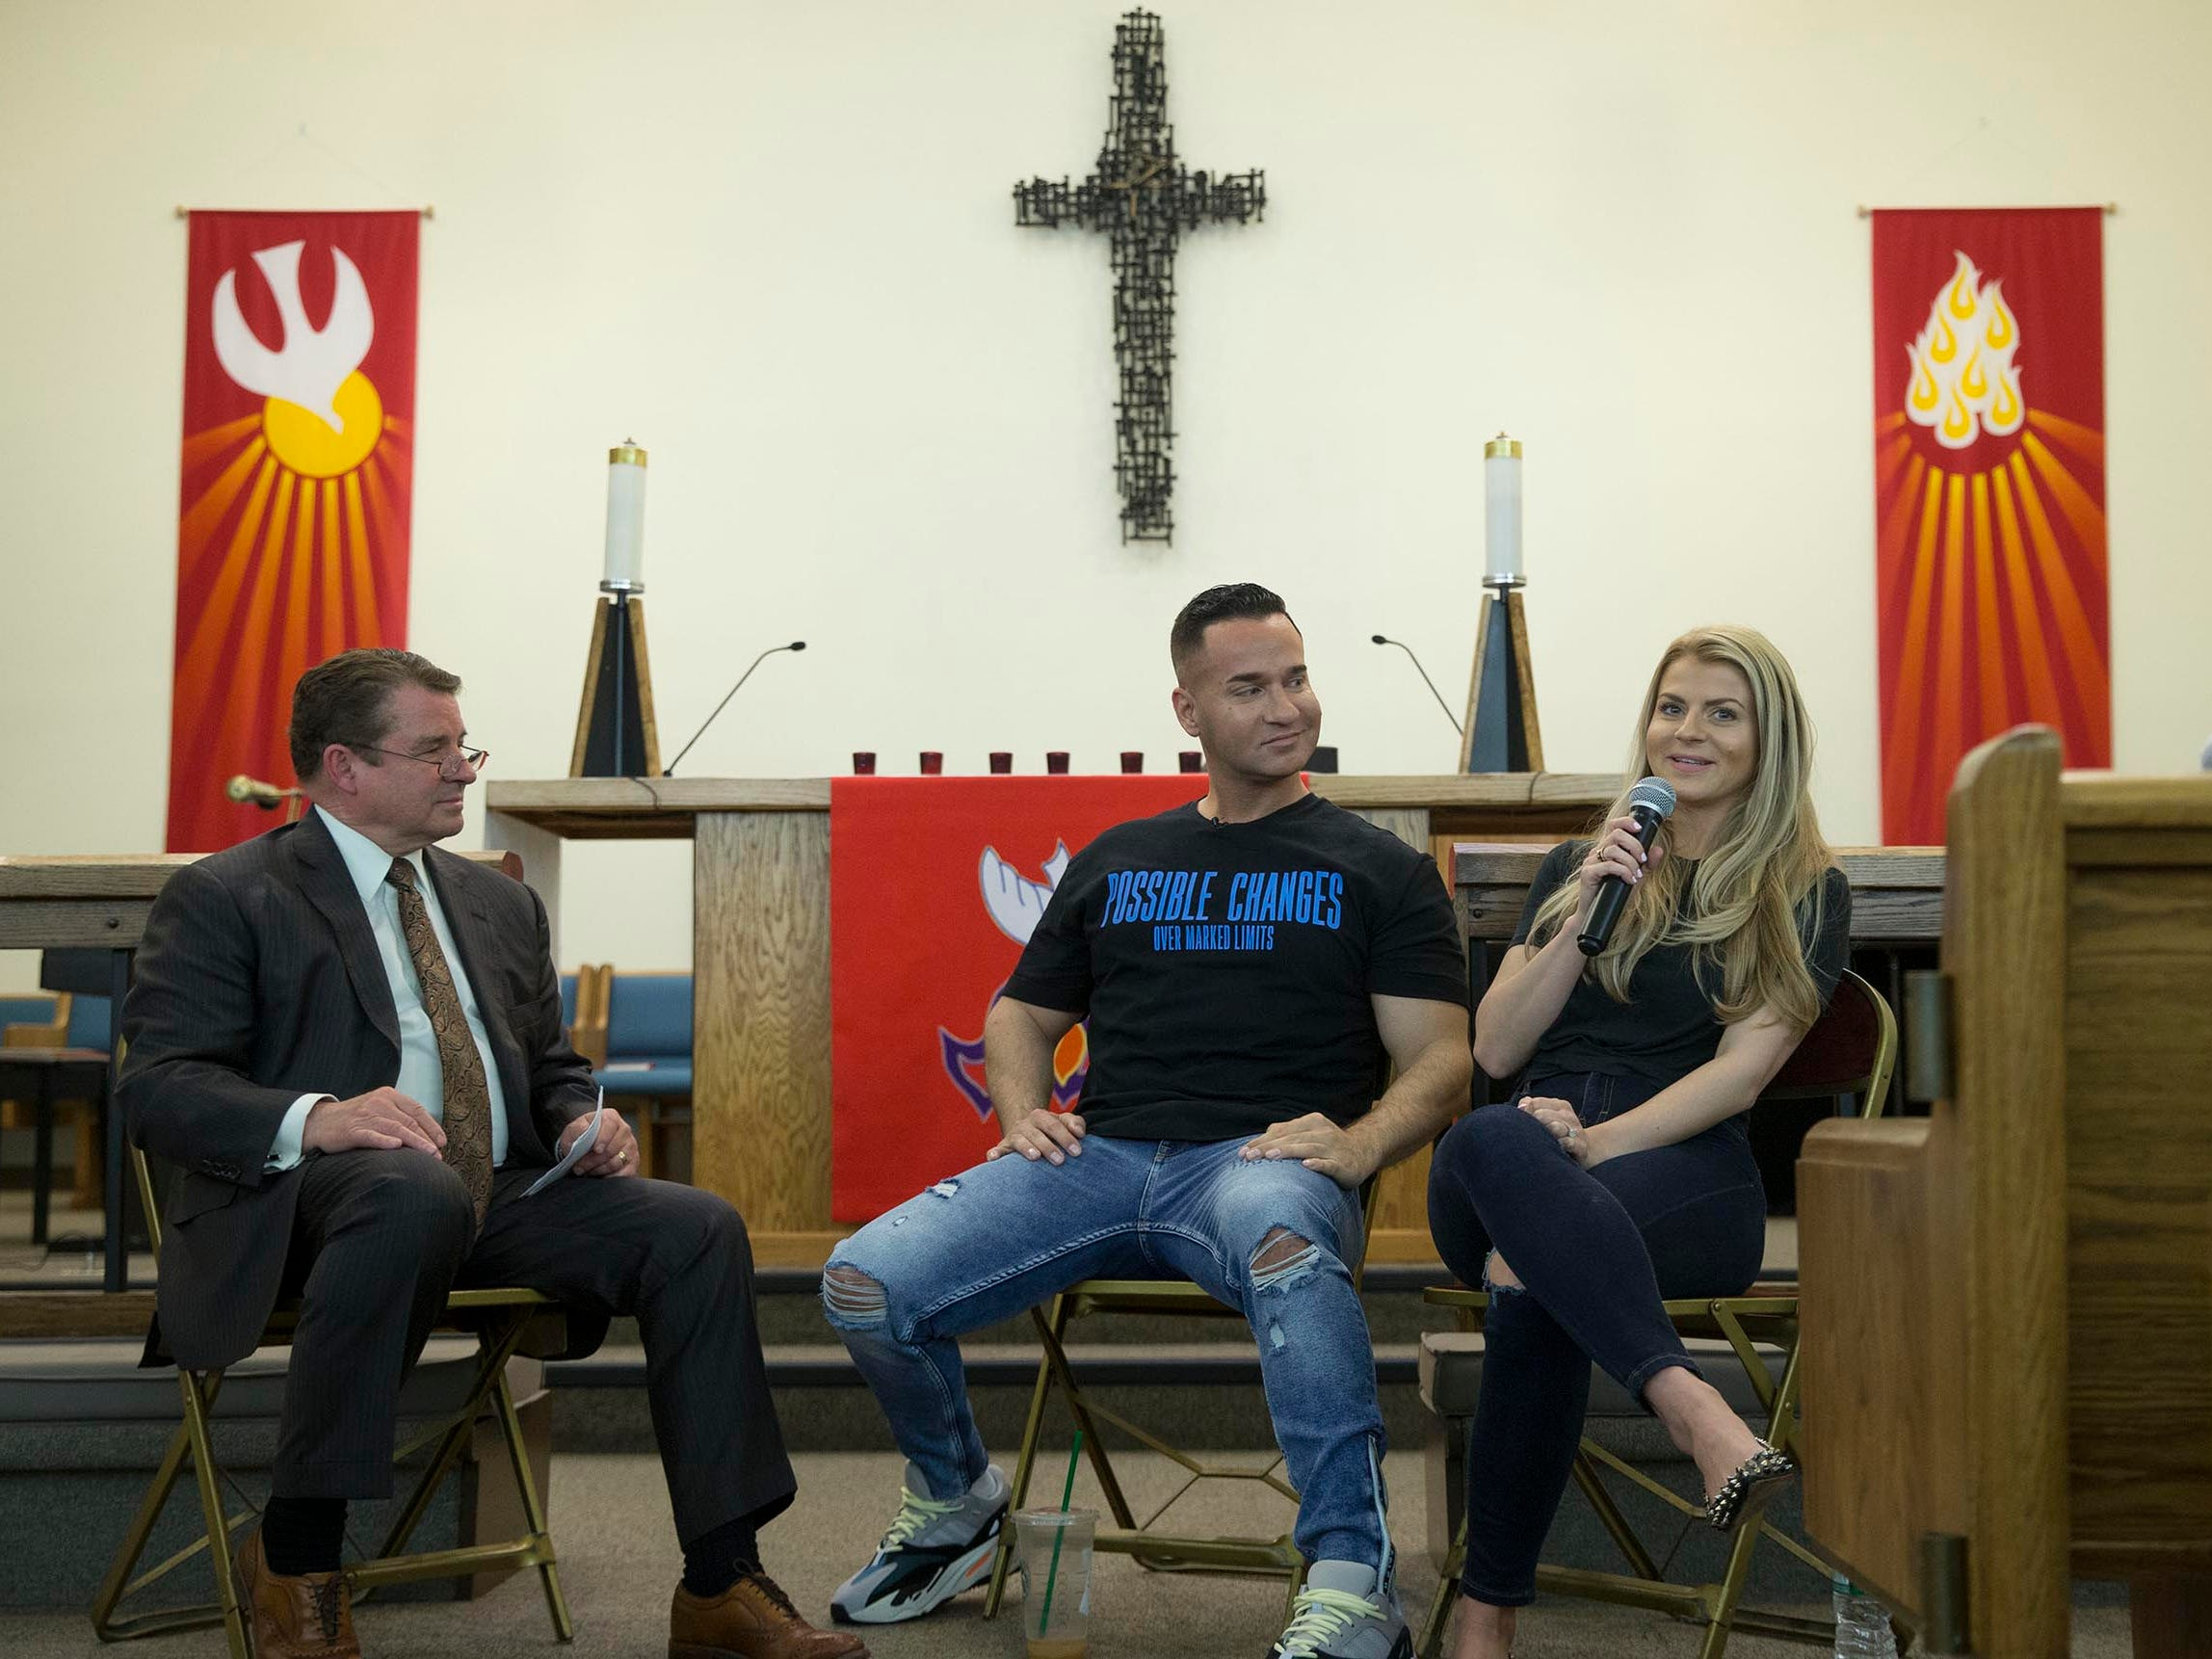 "Mike, center, with his fiancé Lauren Pesce, right, and Stephen Willis, co-founder of Hope Sheds Light. Mike ""The Situation"" Sorrentino  speaks about his evolution from poster boy for bad boy behavior as a cast member of Jersey Shore to a recovering addict and mature, sober cast member of the popular Jersey Shore Family Vacation. He is speaking at a meeting for Hope Sheds Light, a recovery group meeting at the Holy Cross Lutheran Church.  Toms River, NJ on Tuesday, May 22, 2018"